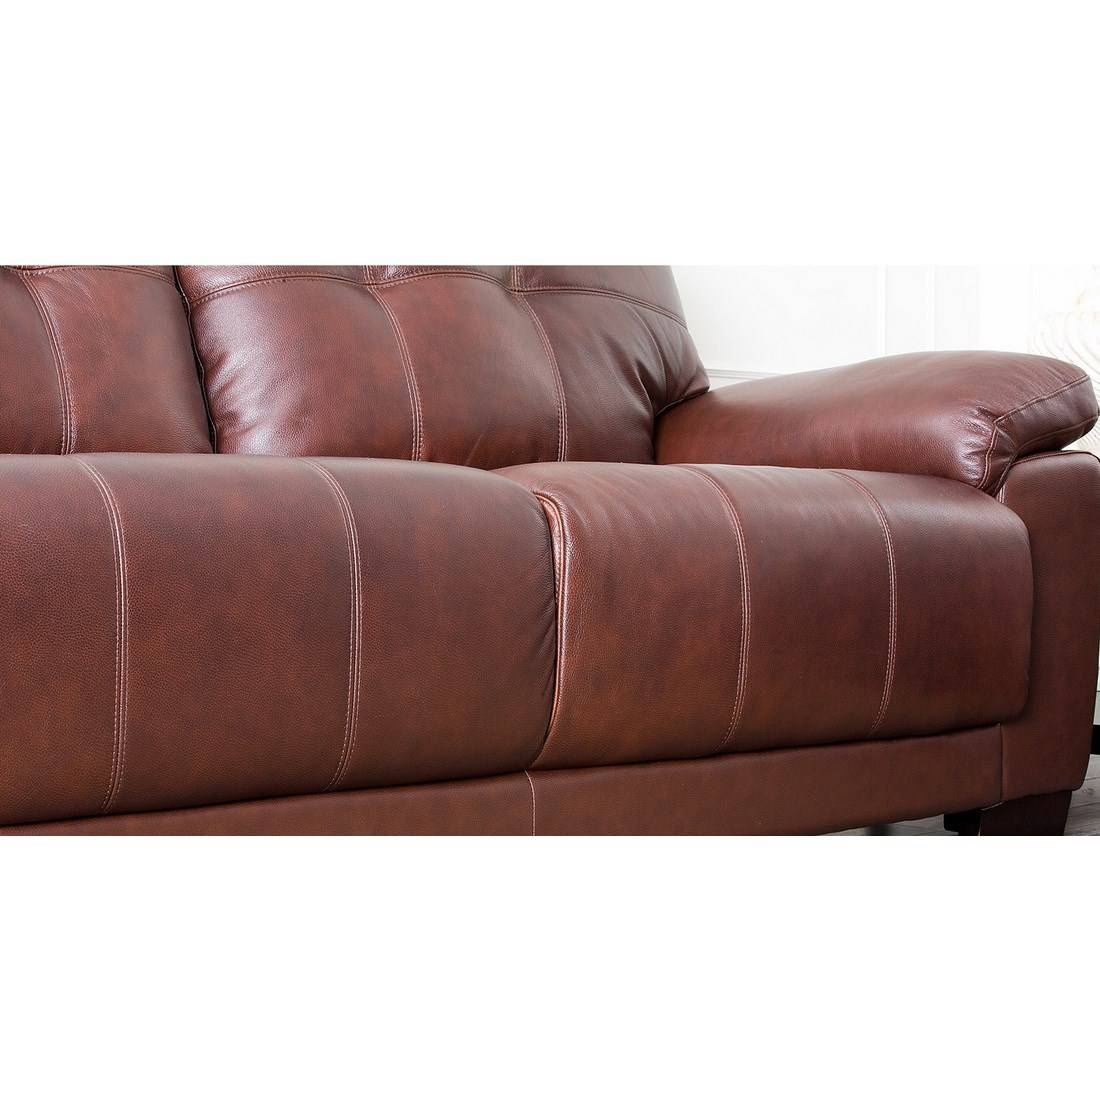 Abbyson Living Sf-5902-Cst-3 Florence Two Tone Brown Leather Sofa within Florence Leather Sofas (Image 1 of 30)